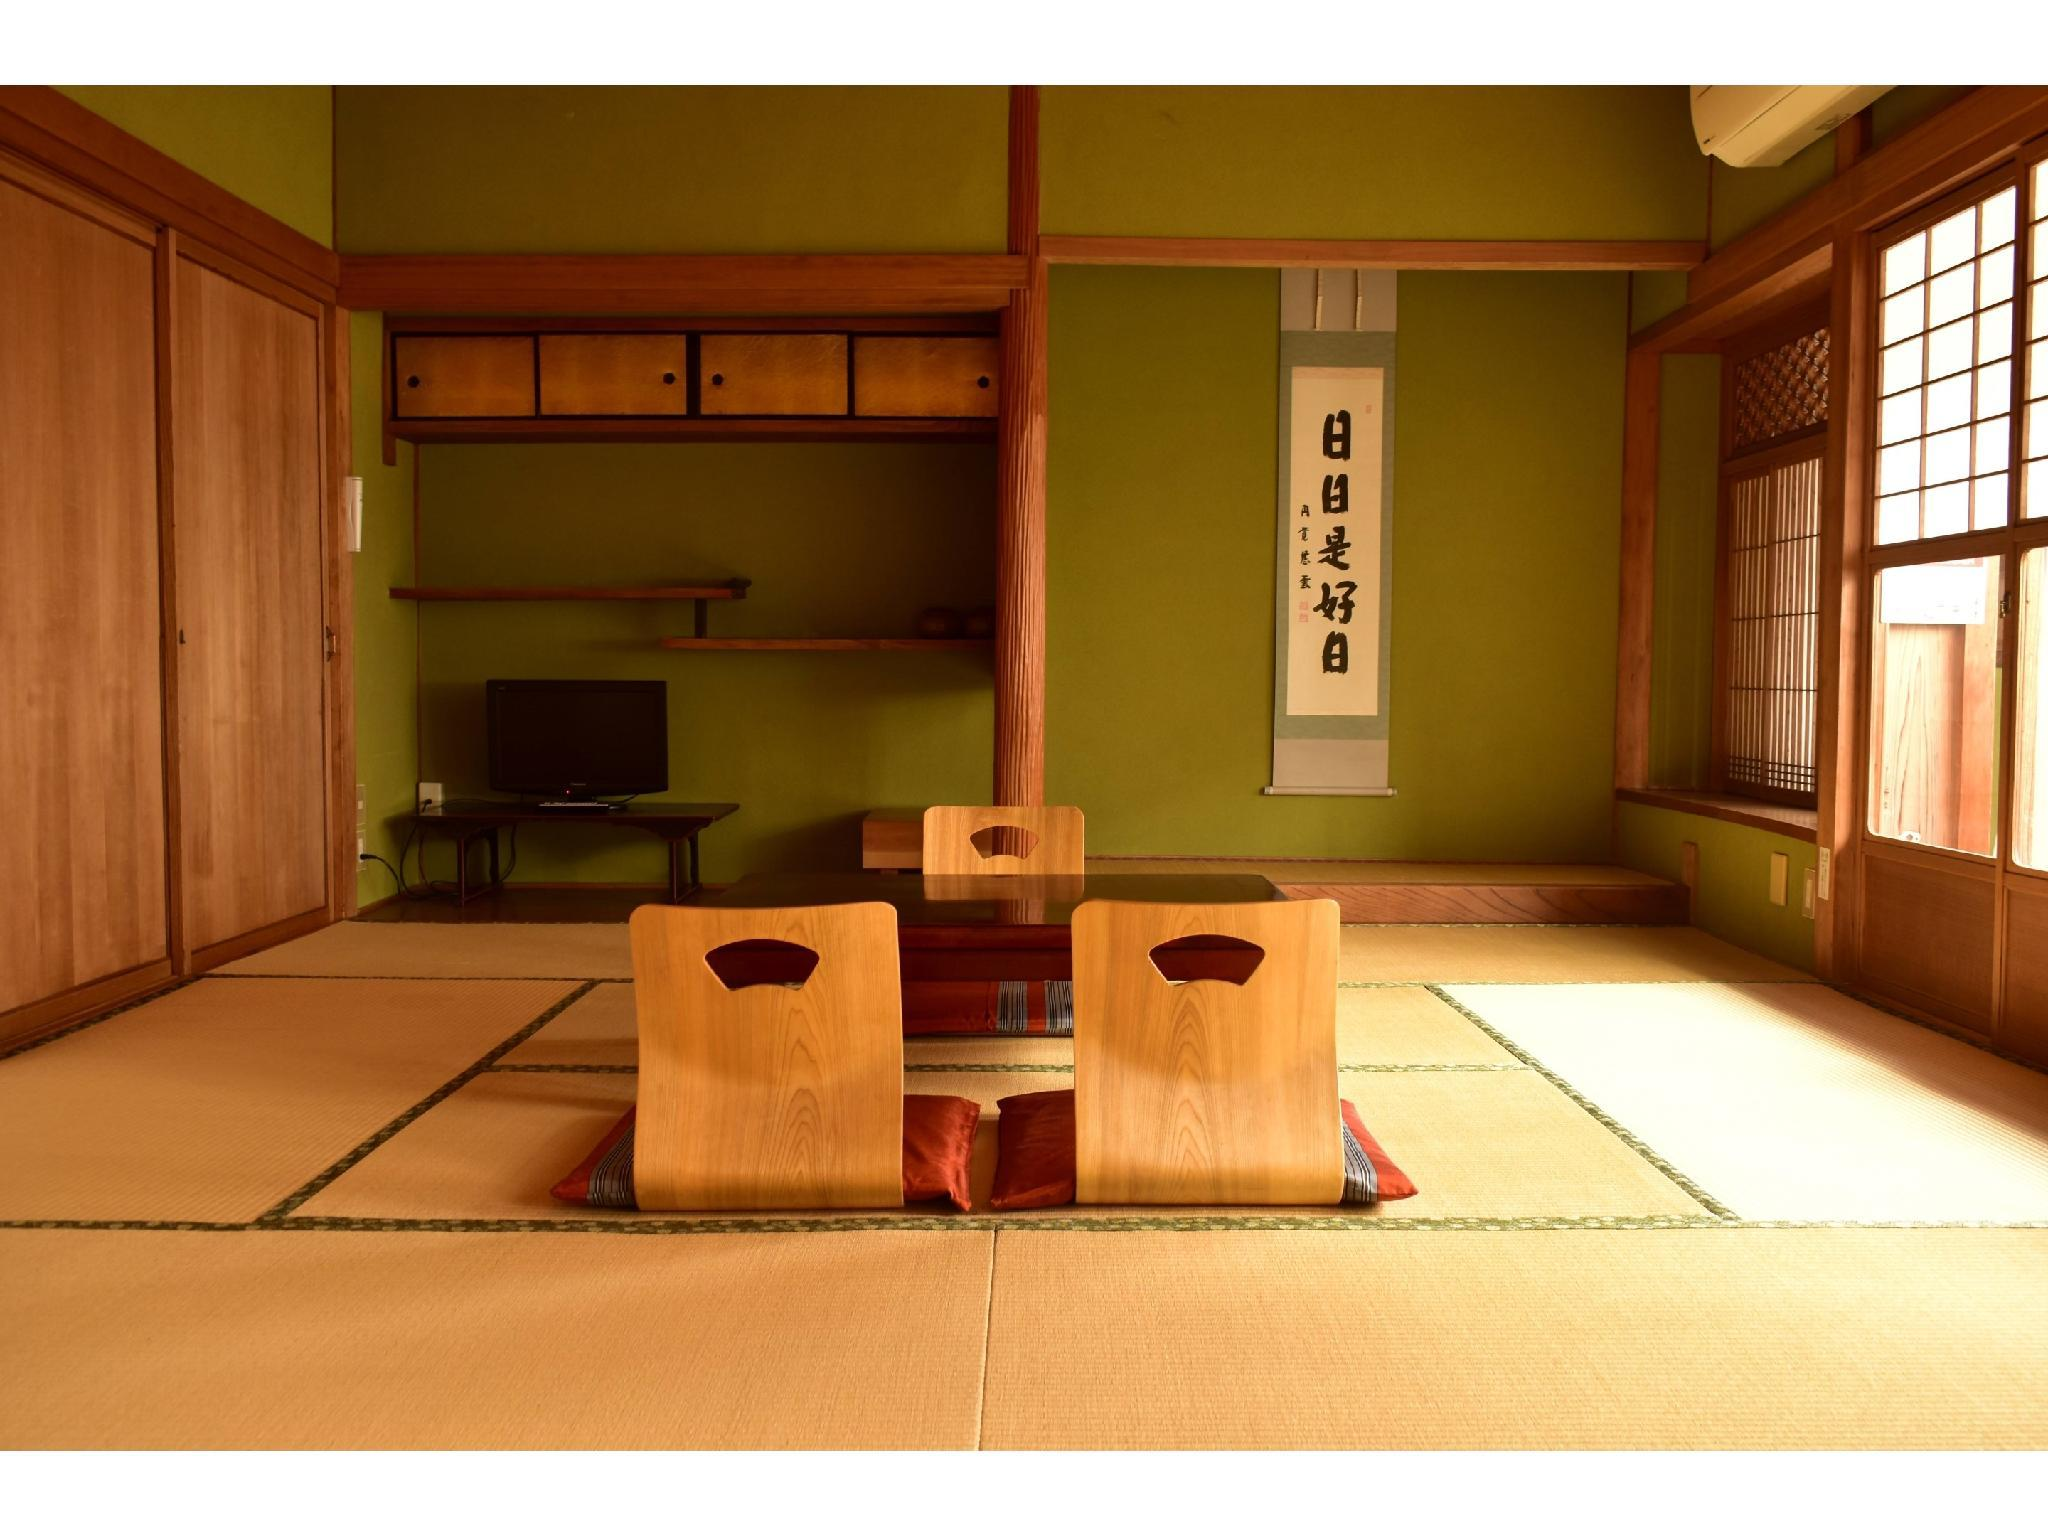 和式房※有廁所洗臉台 (Japanese-style Room *Has toilet and washroom)